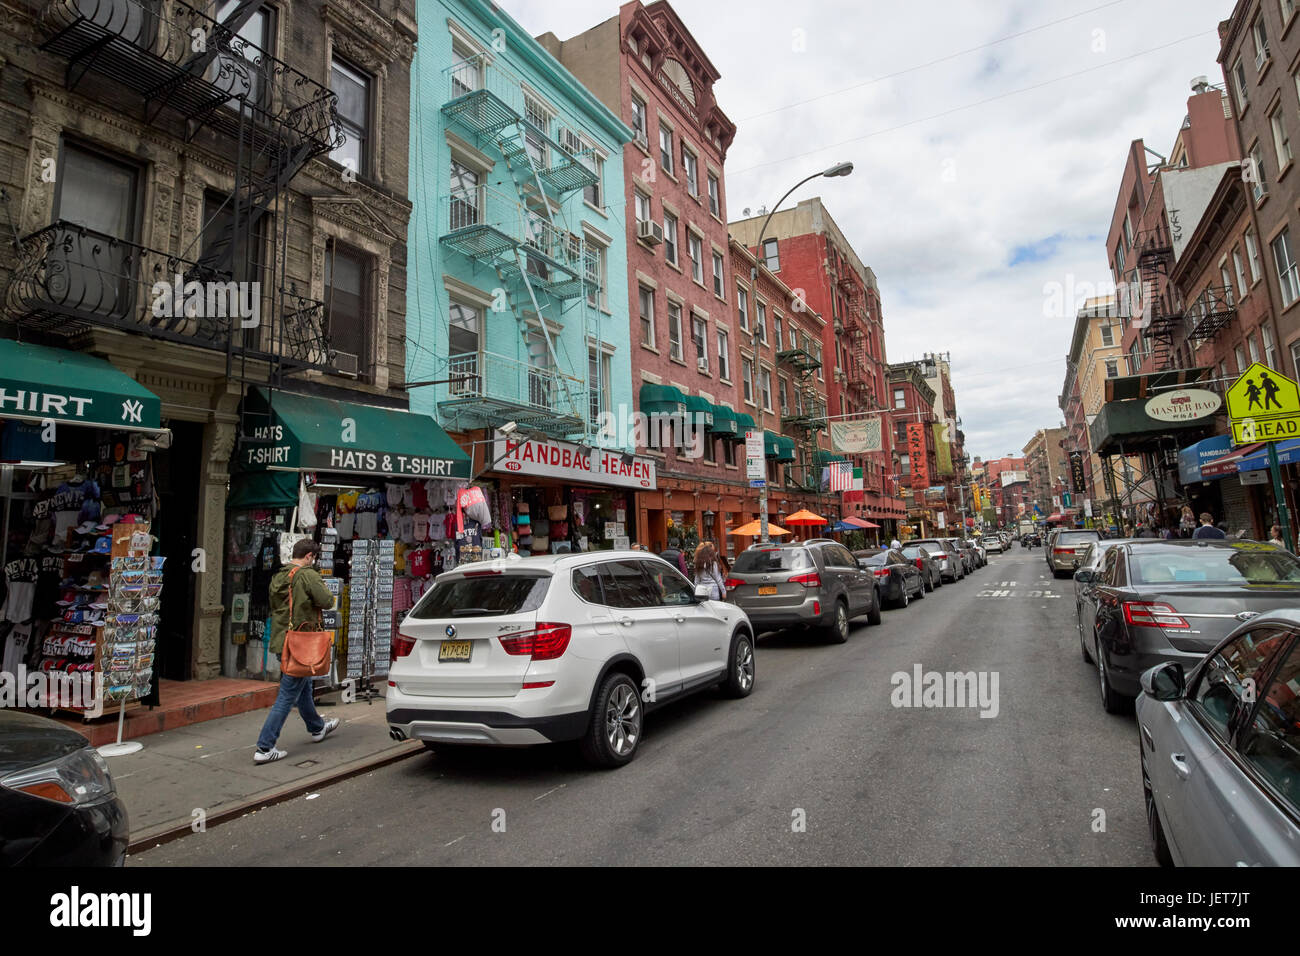 mulberry street little italy New York City USA - Stock Image